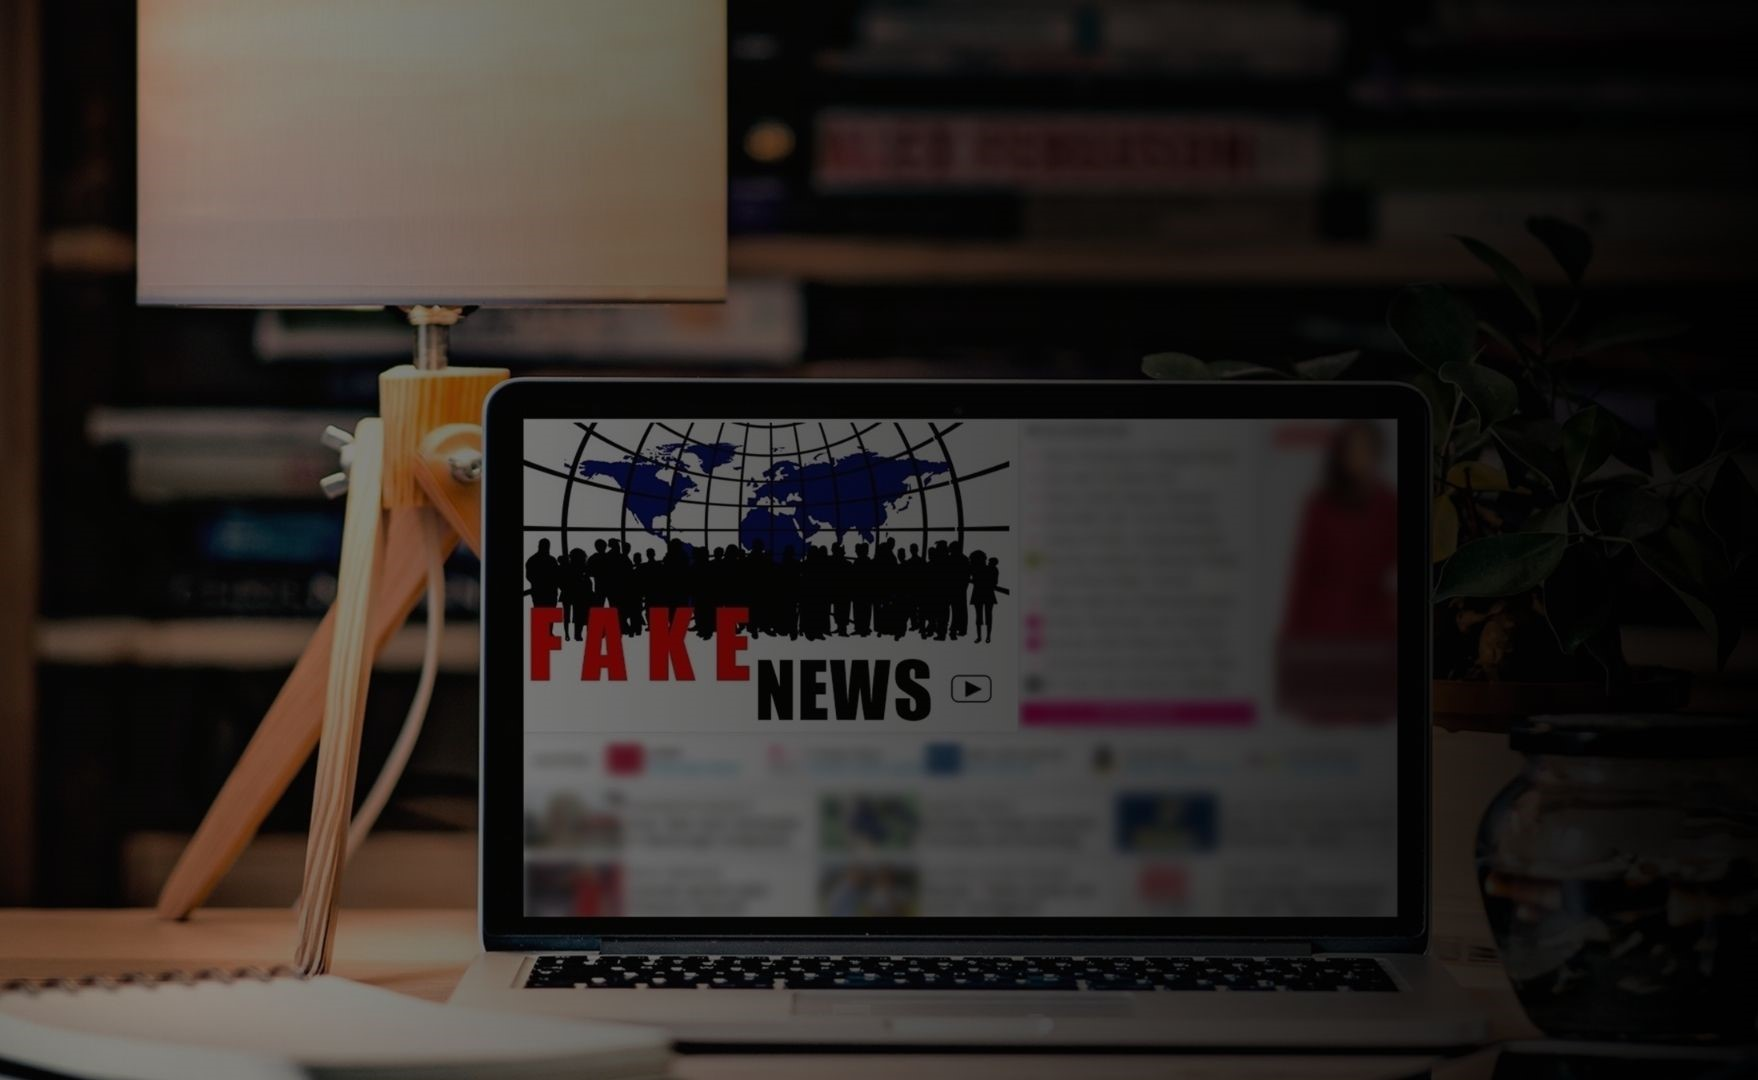 THE WAR ON FAKE NEWS AND DISINFORMATION